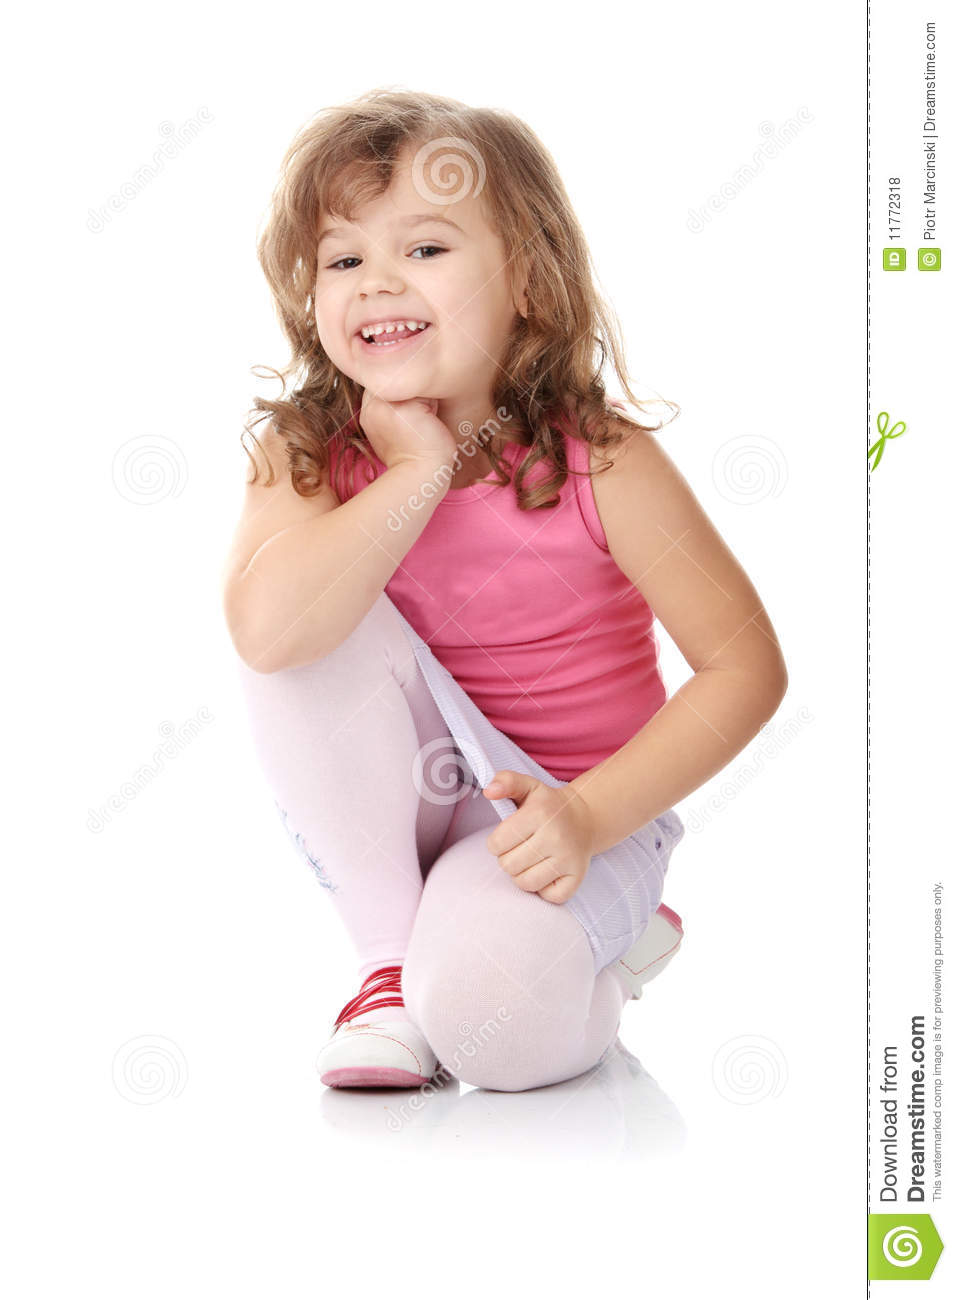 Y R U Black Qozmo Aiire Glitter Sneaker: Portrait Of A 5 Year Old Girl Stock Photo